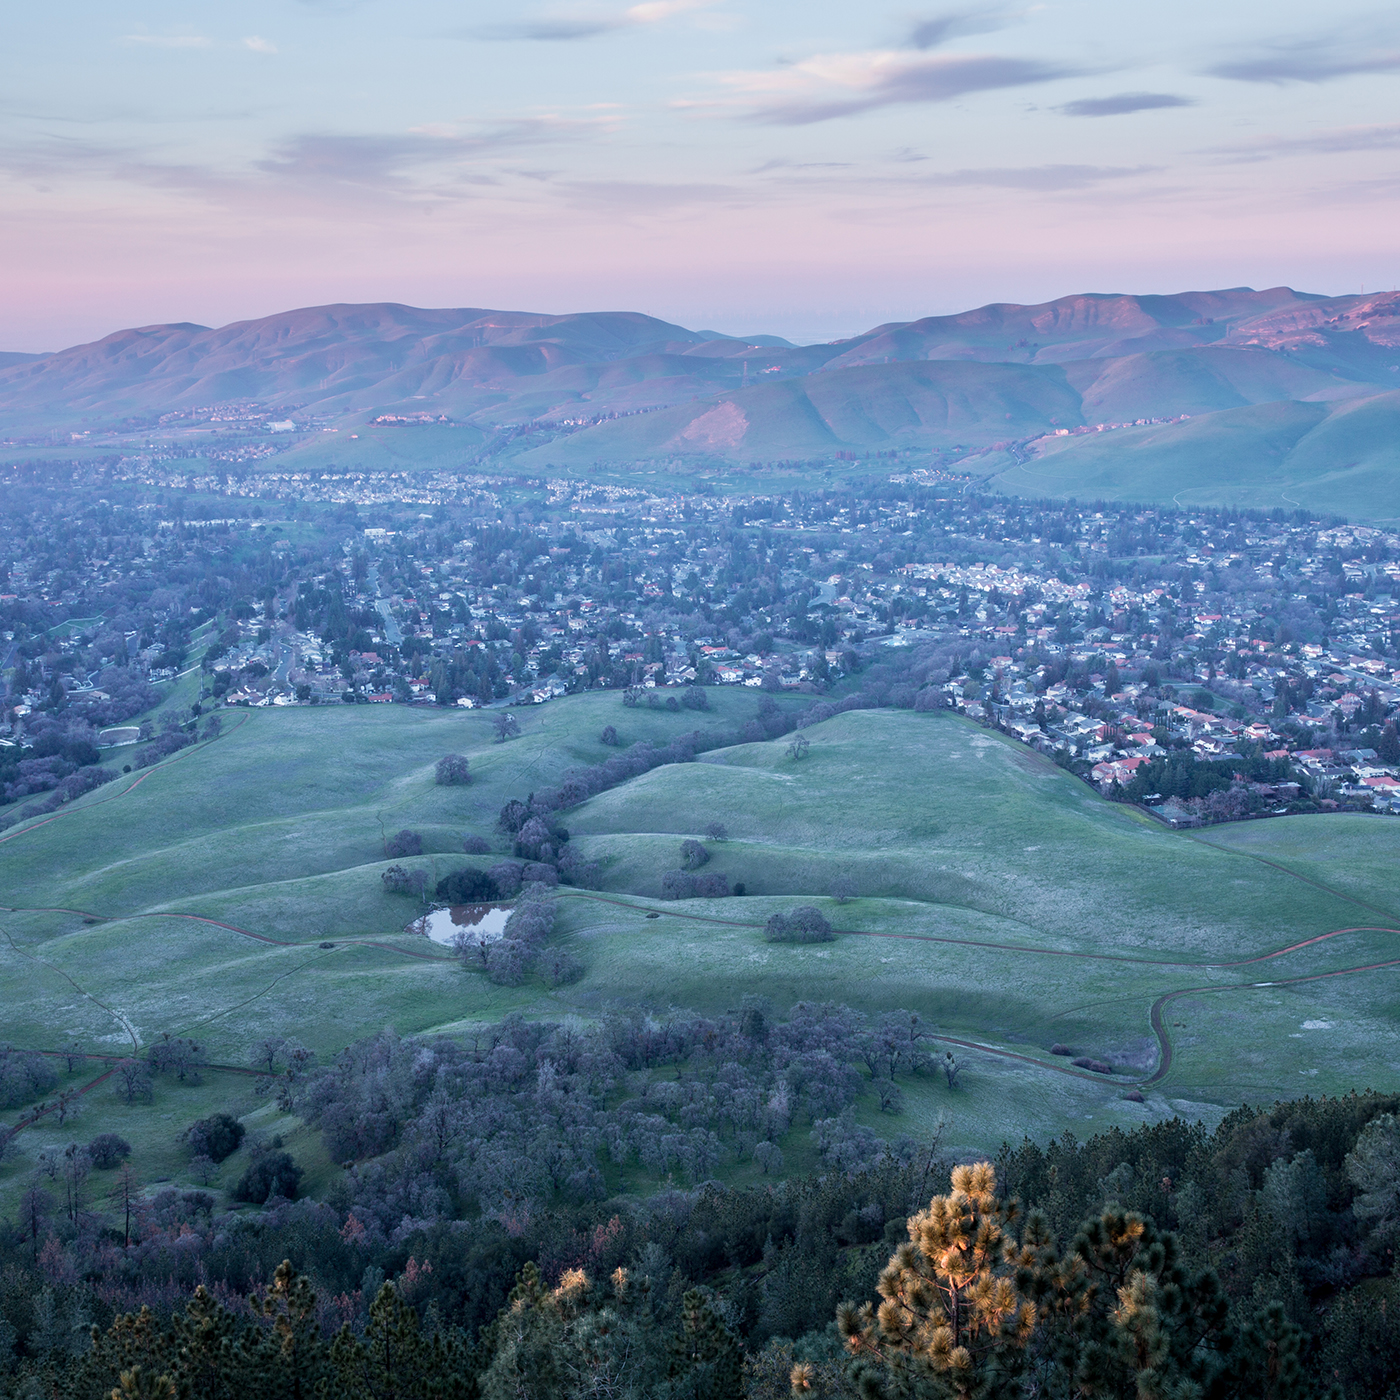 Pleasanton Real Estate, Homes & Houses for Sale, Contra Costa / Tri-Valley CA | PARAGON Real Estate Group